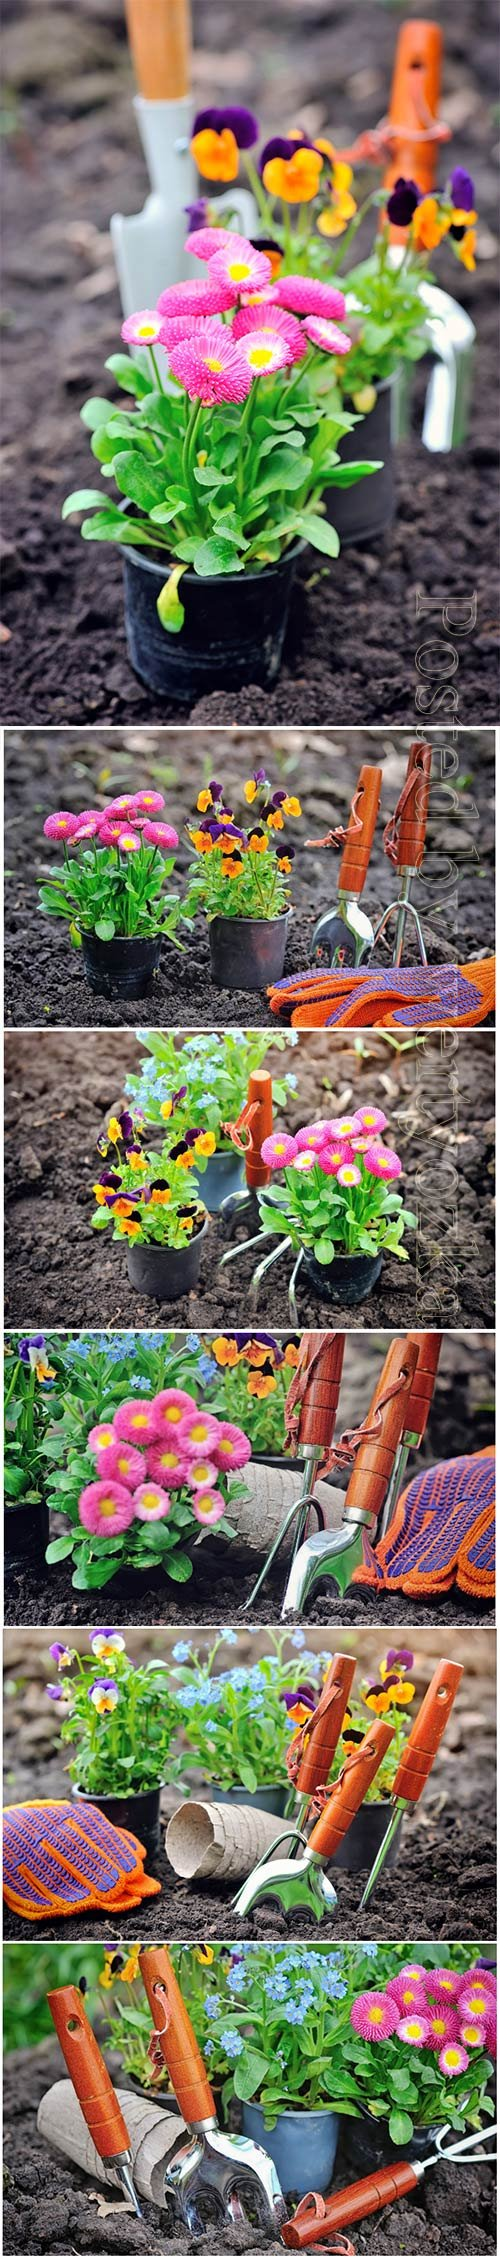 Gardening, flower planting beautiful stock photo